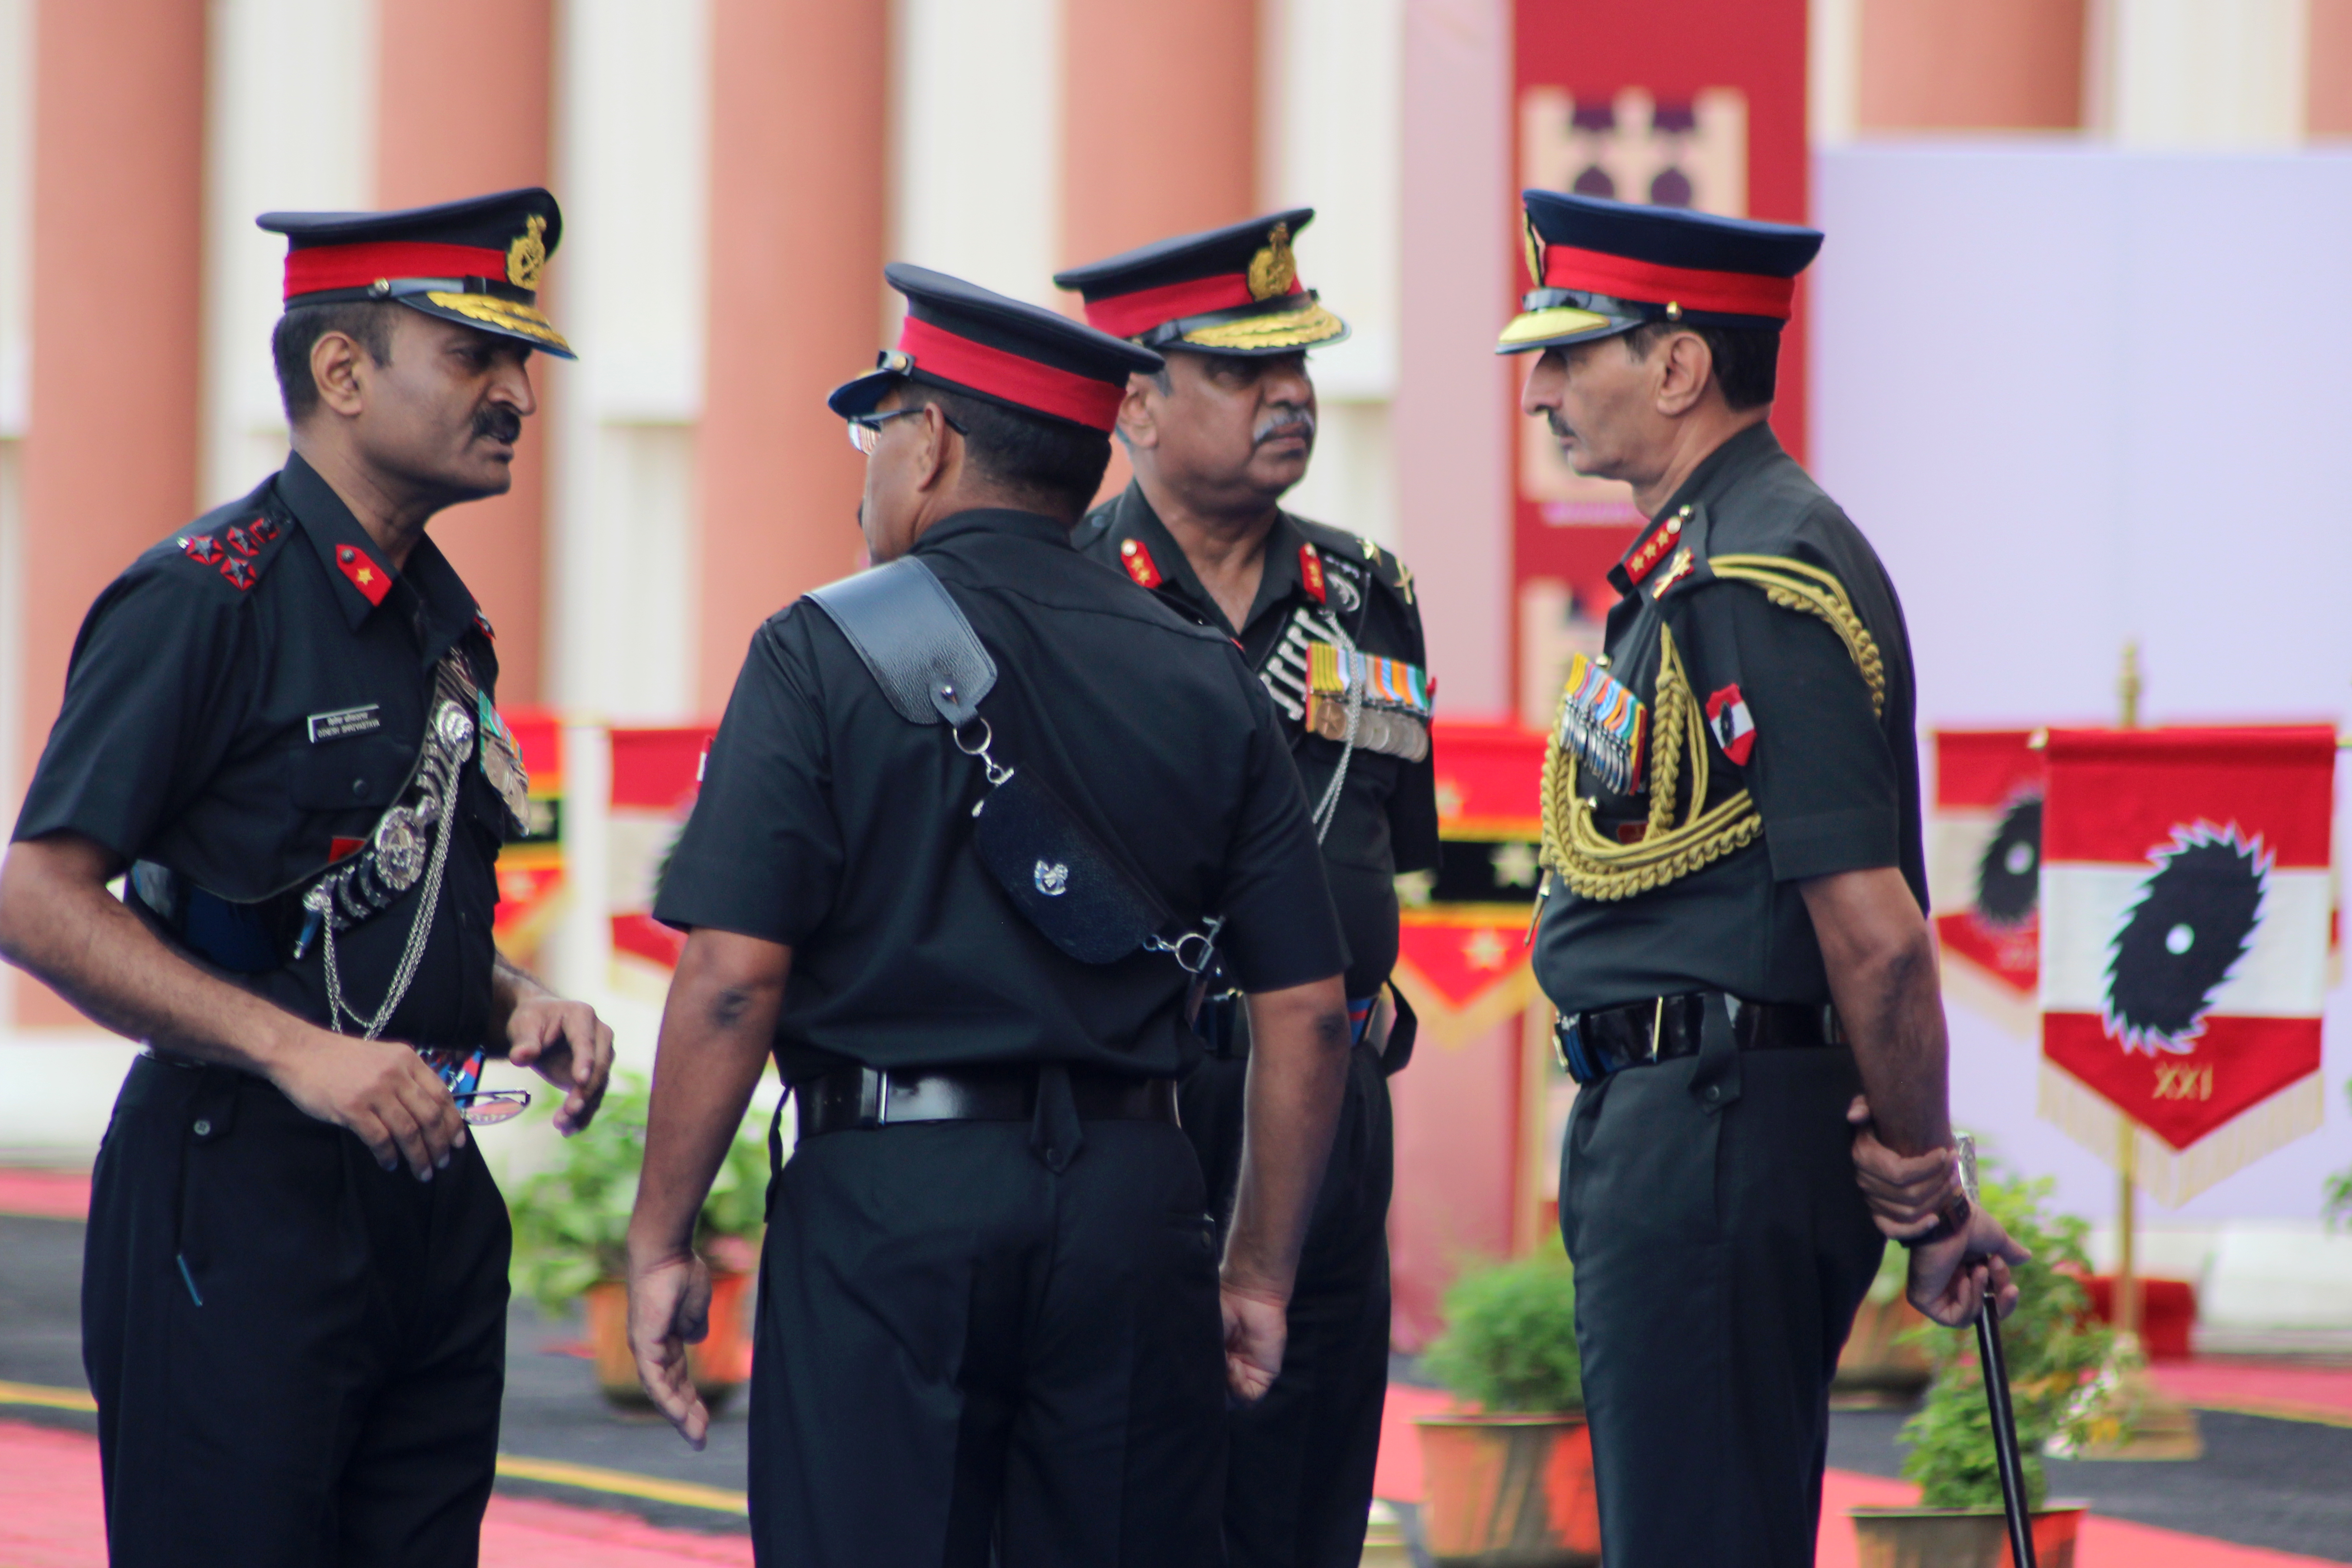 https://upload.wikimedia.org/wikipedia/commons/3/38/Felicitation_Ceremony_Southern_Command_Indian_Army_2017-_08.jpg